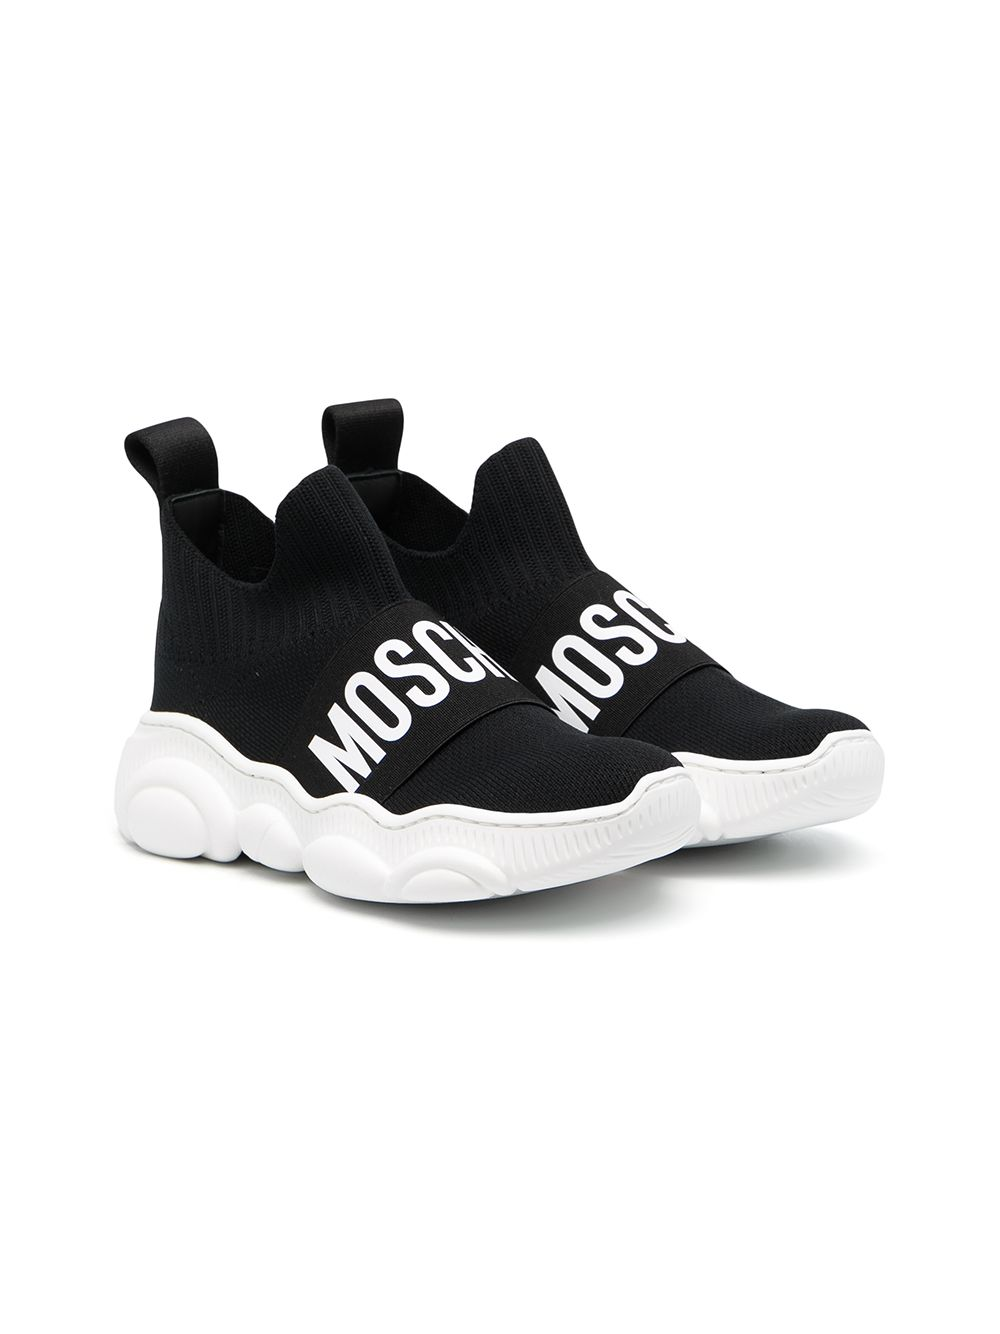 Moschino Kids logo-print hi-top sneakers - Black von Moschino Kids